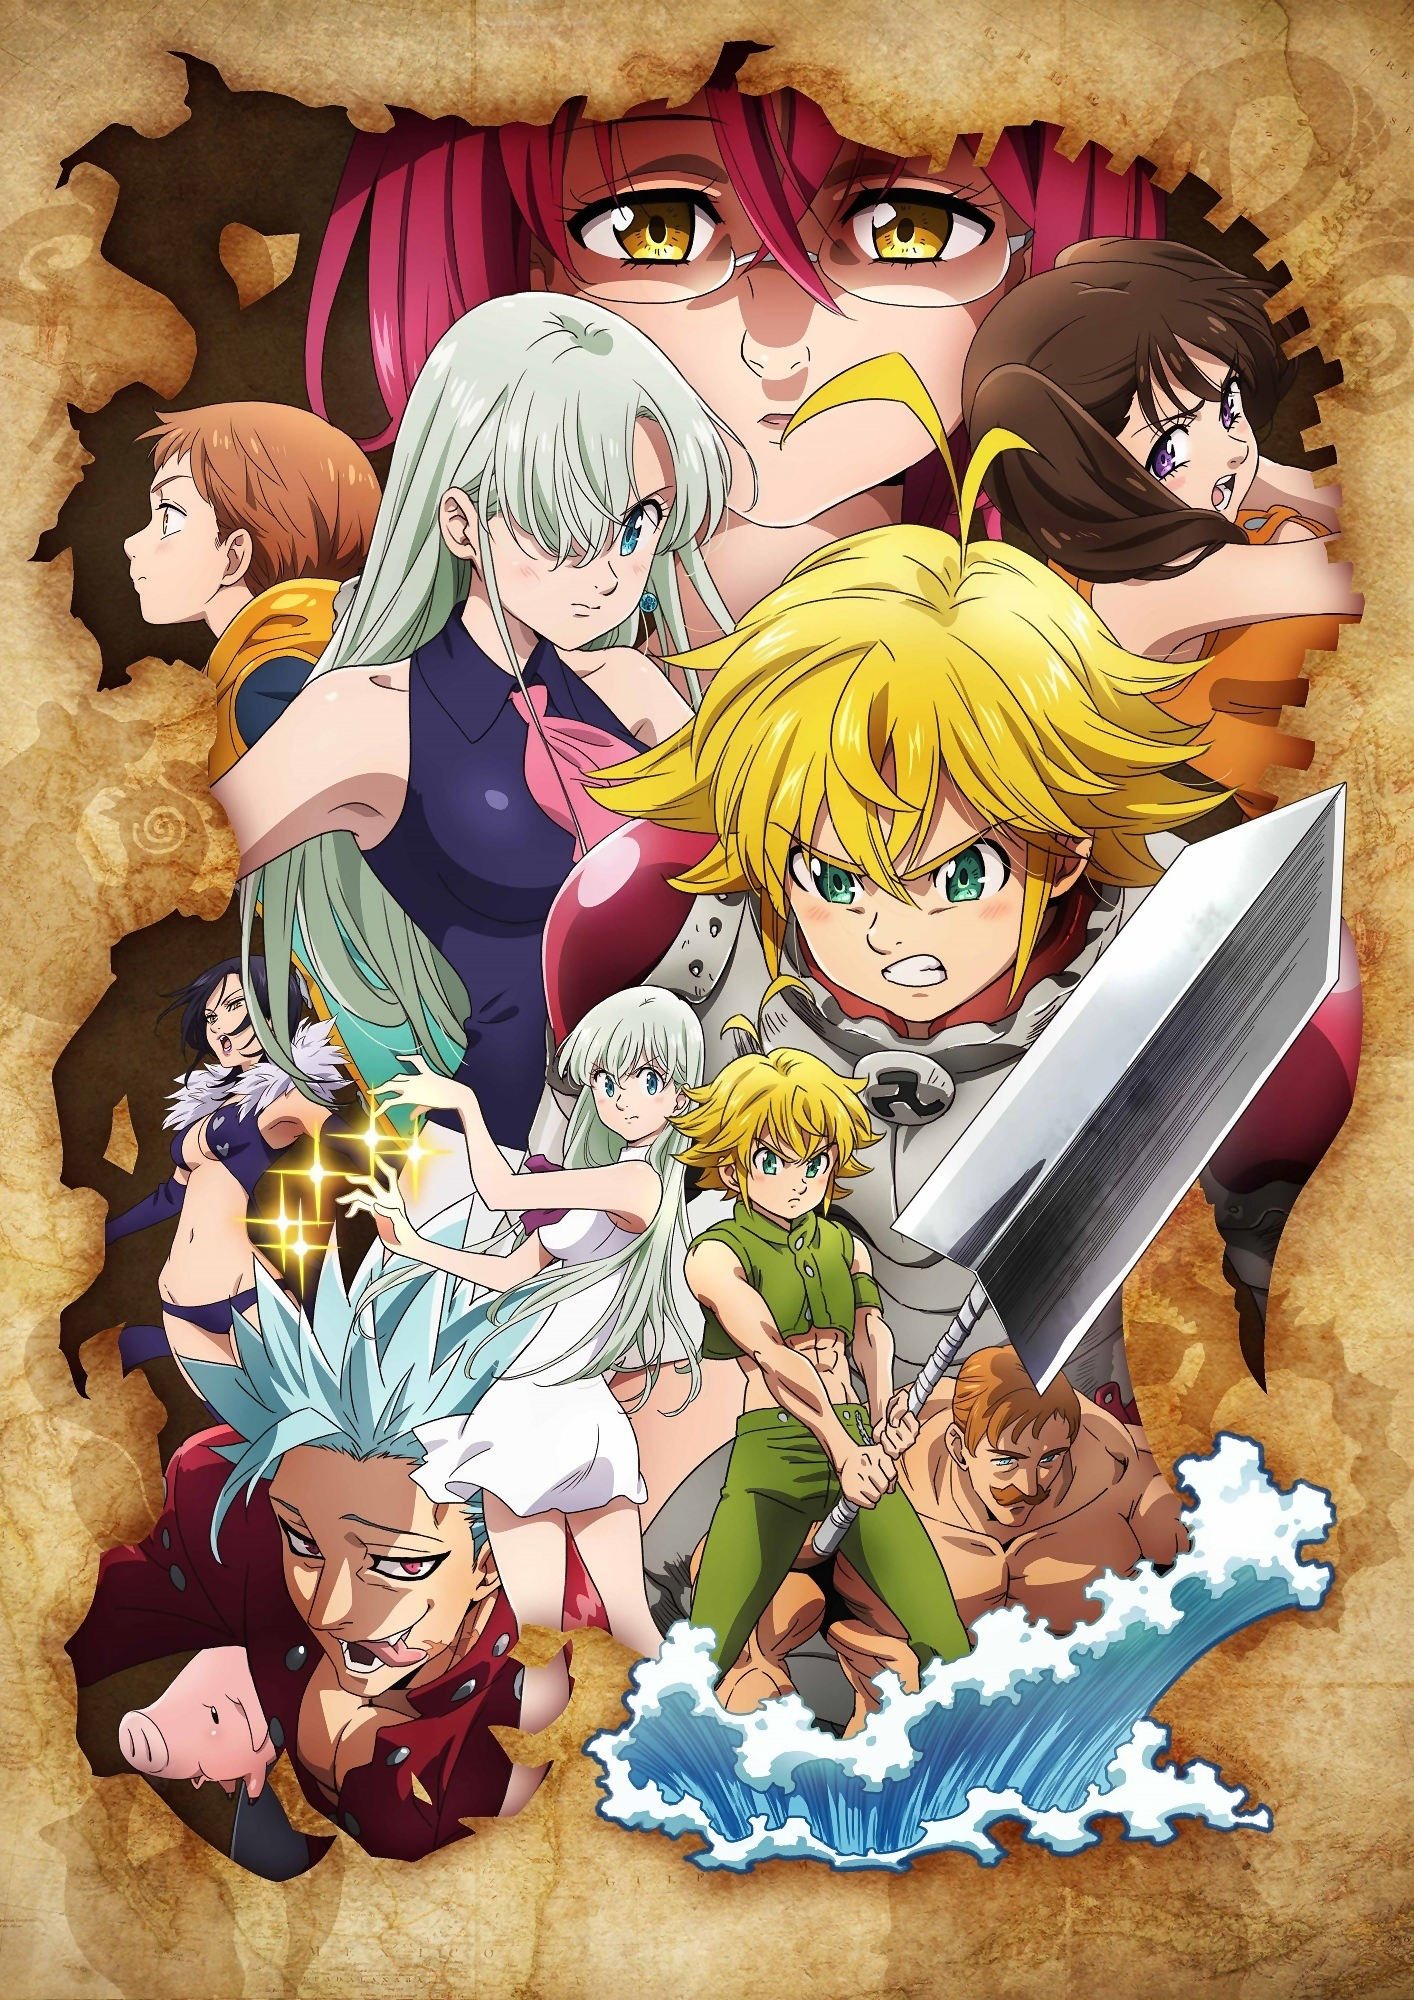 The Seven Deadly Sins (Nanatsu no Taizai) Sezona 3 Epizoda 24 KRAJ 3.SEZONE